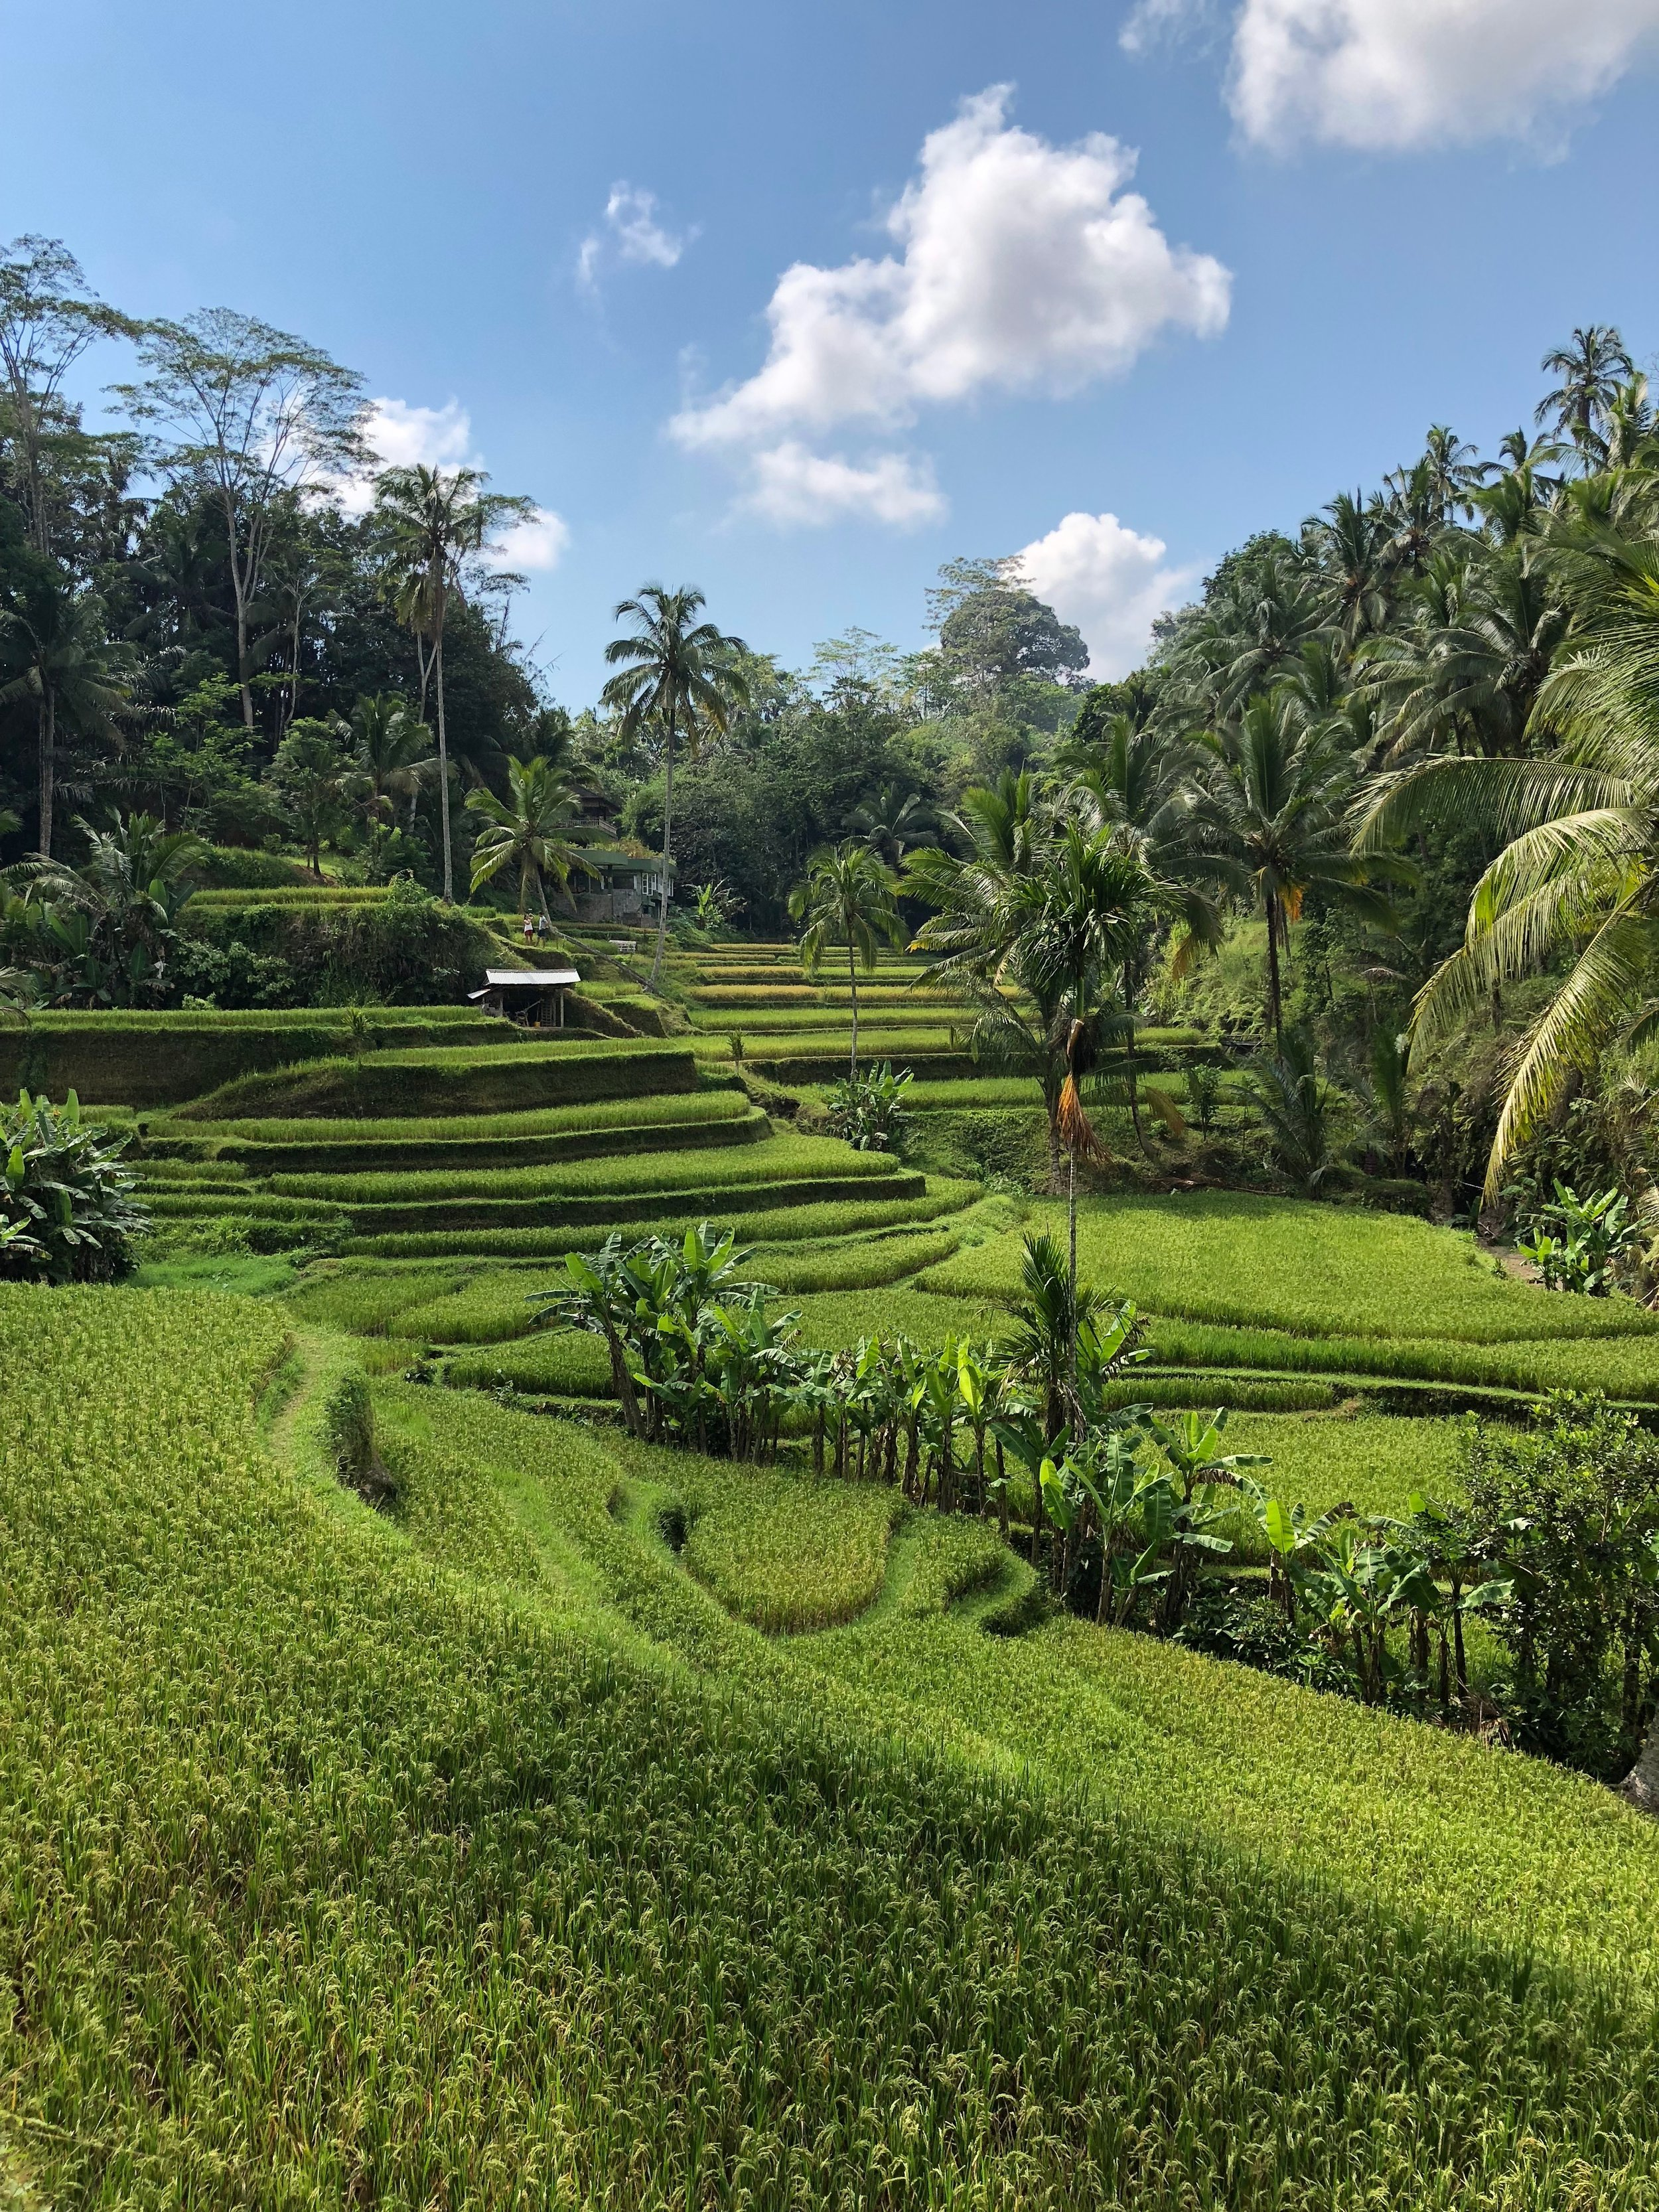 Even though you can't see them, there are paths to follow through the rice paddies